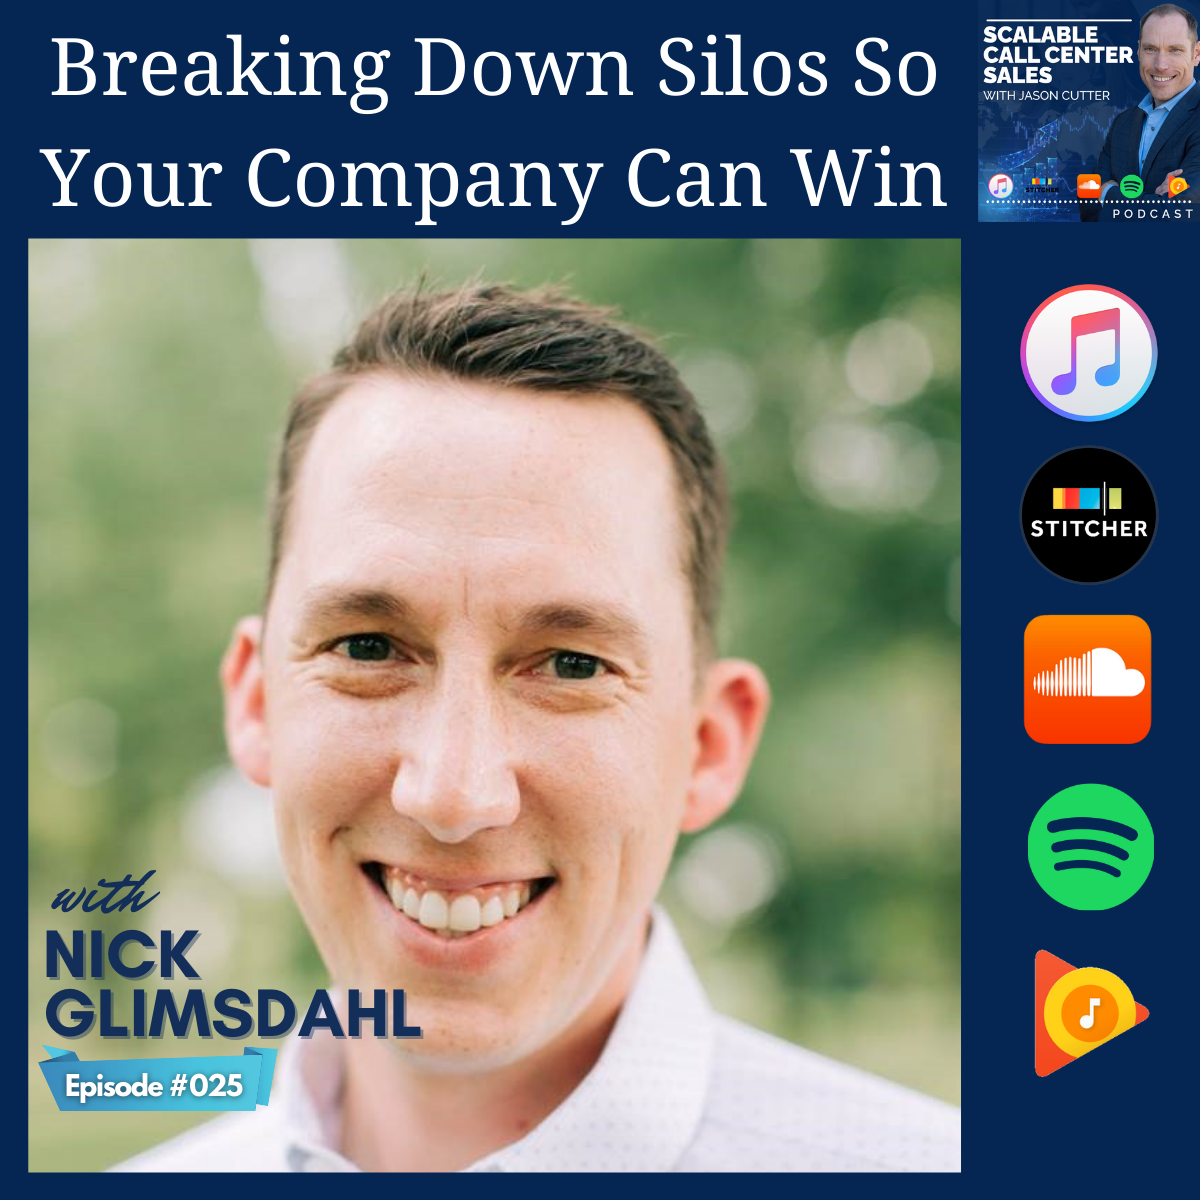 You are currently viewing [025] Breaking Down Silos So Your Company Can Win, with Nick Glimsdahl from Press 1 For Nick